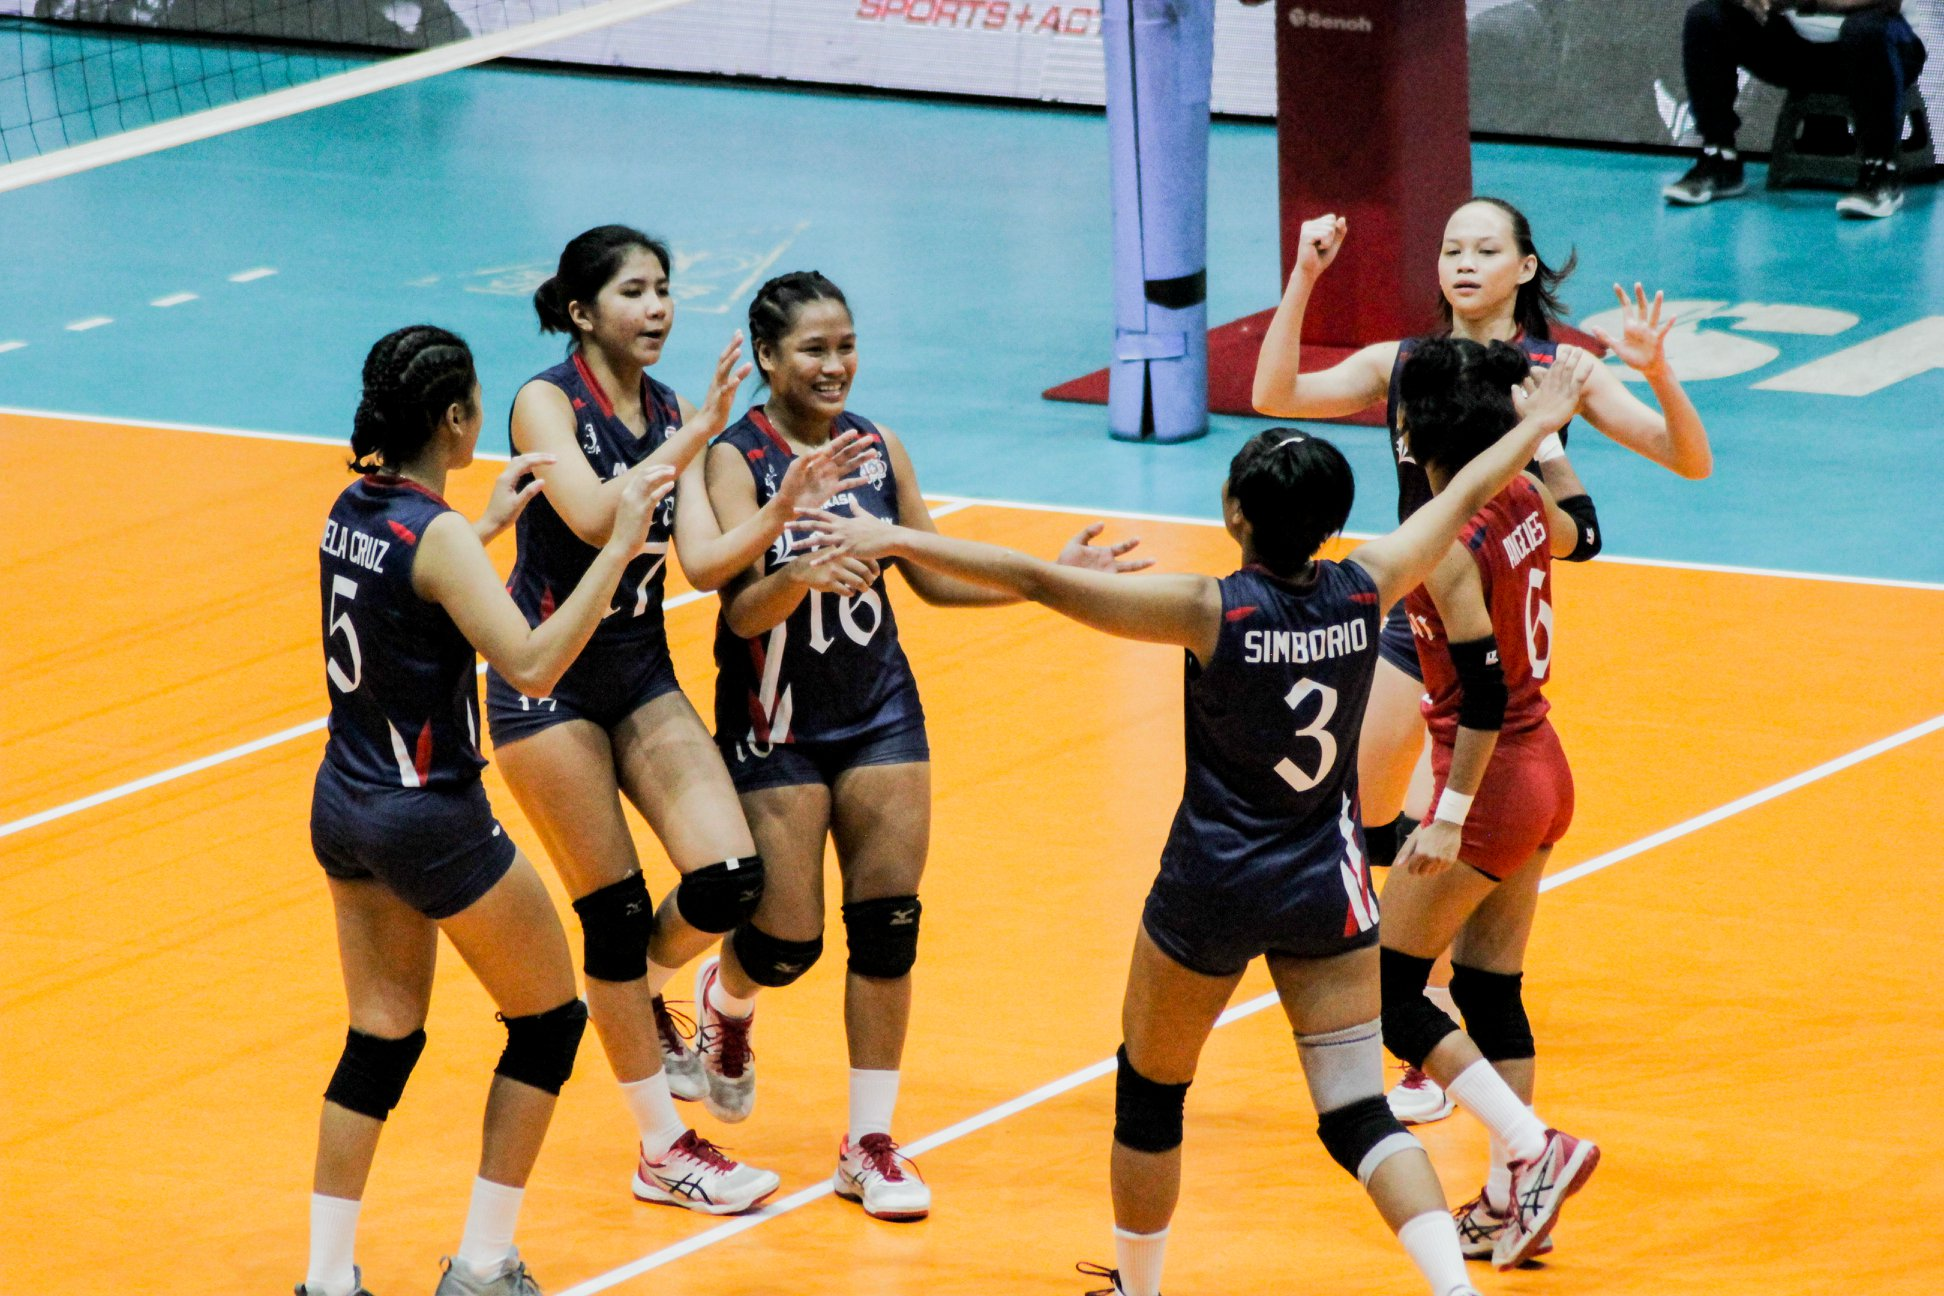 Tiebreaker Times Cuñada, Letran pull off come-from-behind stunner against Perpetual CSJL News PVL UPHSD Volleyball  Perpetual Women's Volleyball Michael Inoferio Macky Cariño Letran Women's Volleyball Kath Dela Cruz Jhona Rosal Charm Simborio Chamberlaine Cunada Bianca Tripoli 2019 PVL Season 2019 PVL Collegiate Conference